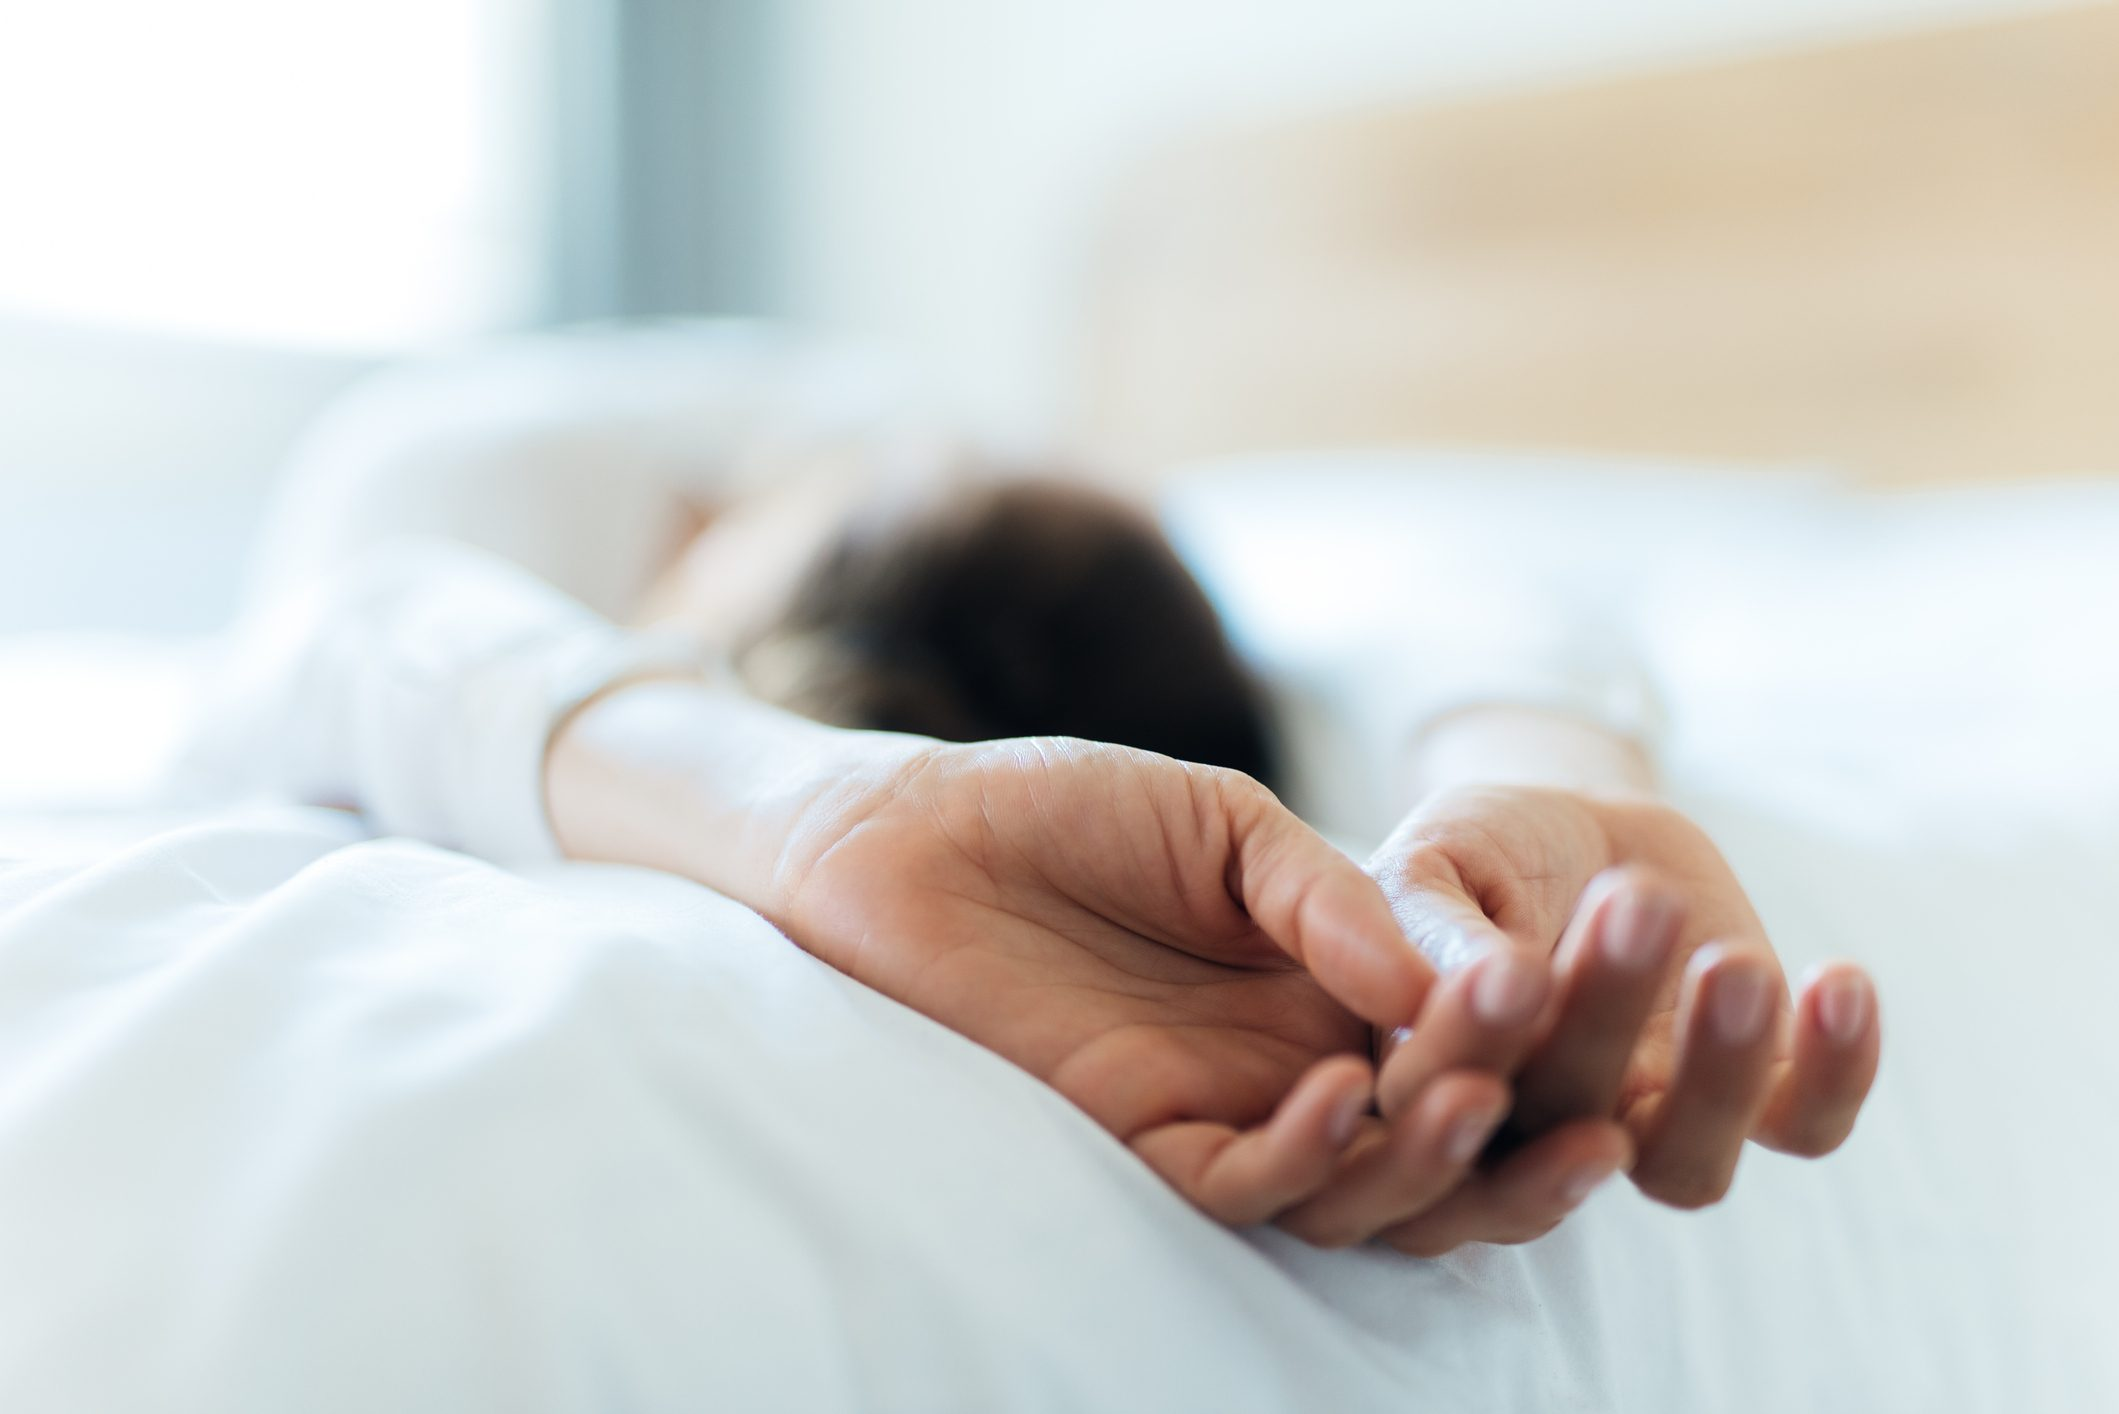 woman taking a nap on bed close up of hands